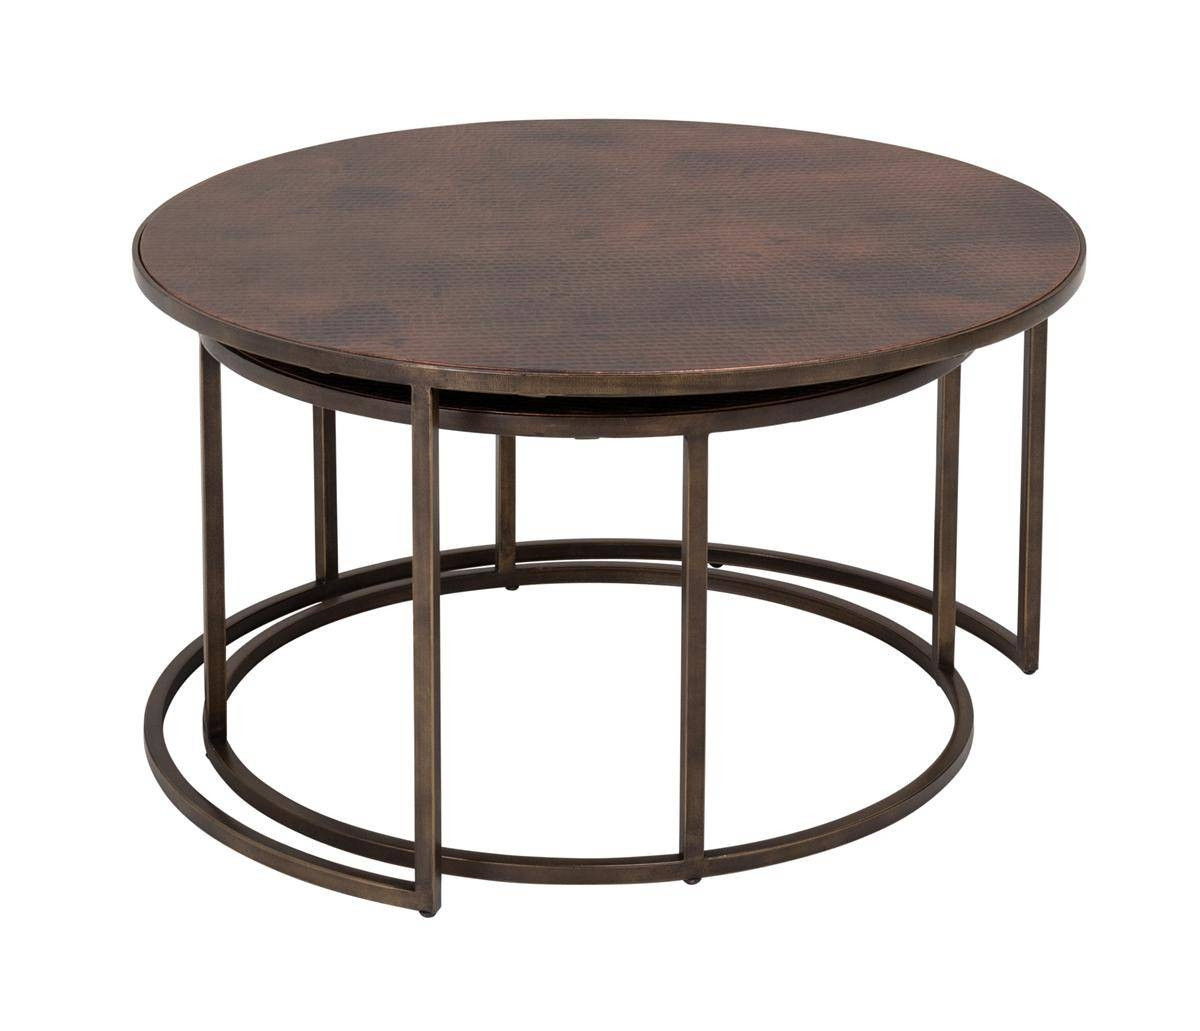 Copper Top Nesting Coffee Tables | Weir's Furniture Intended For Coffee Tables With Nesting Stools (View 24 of 30)